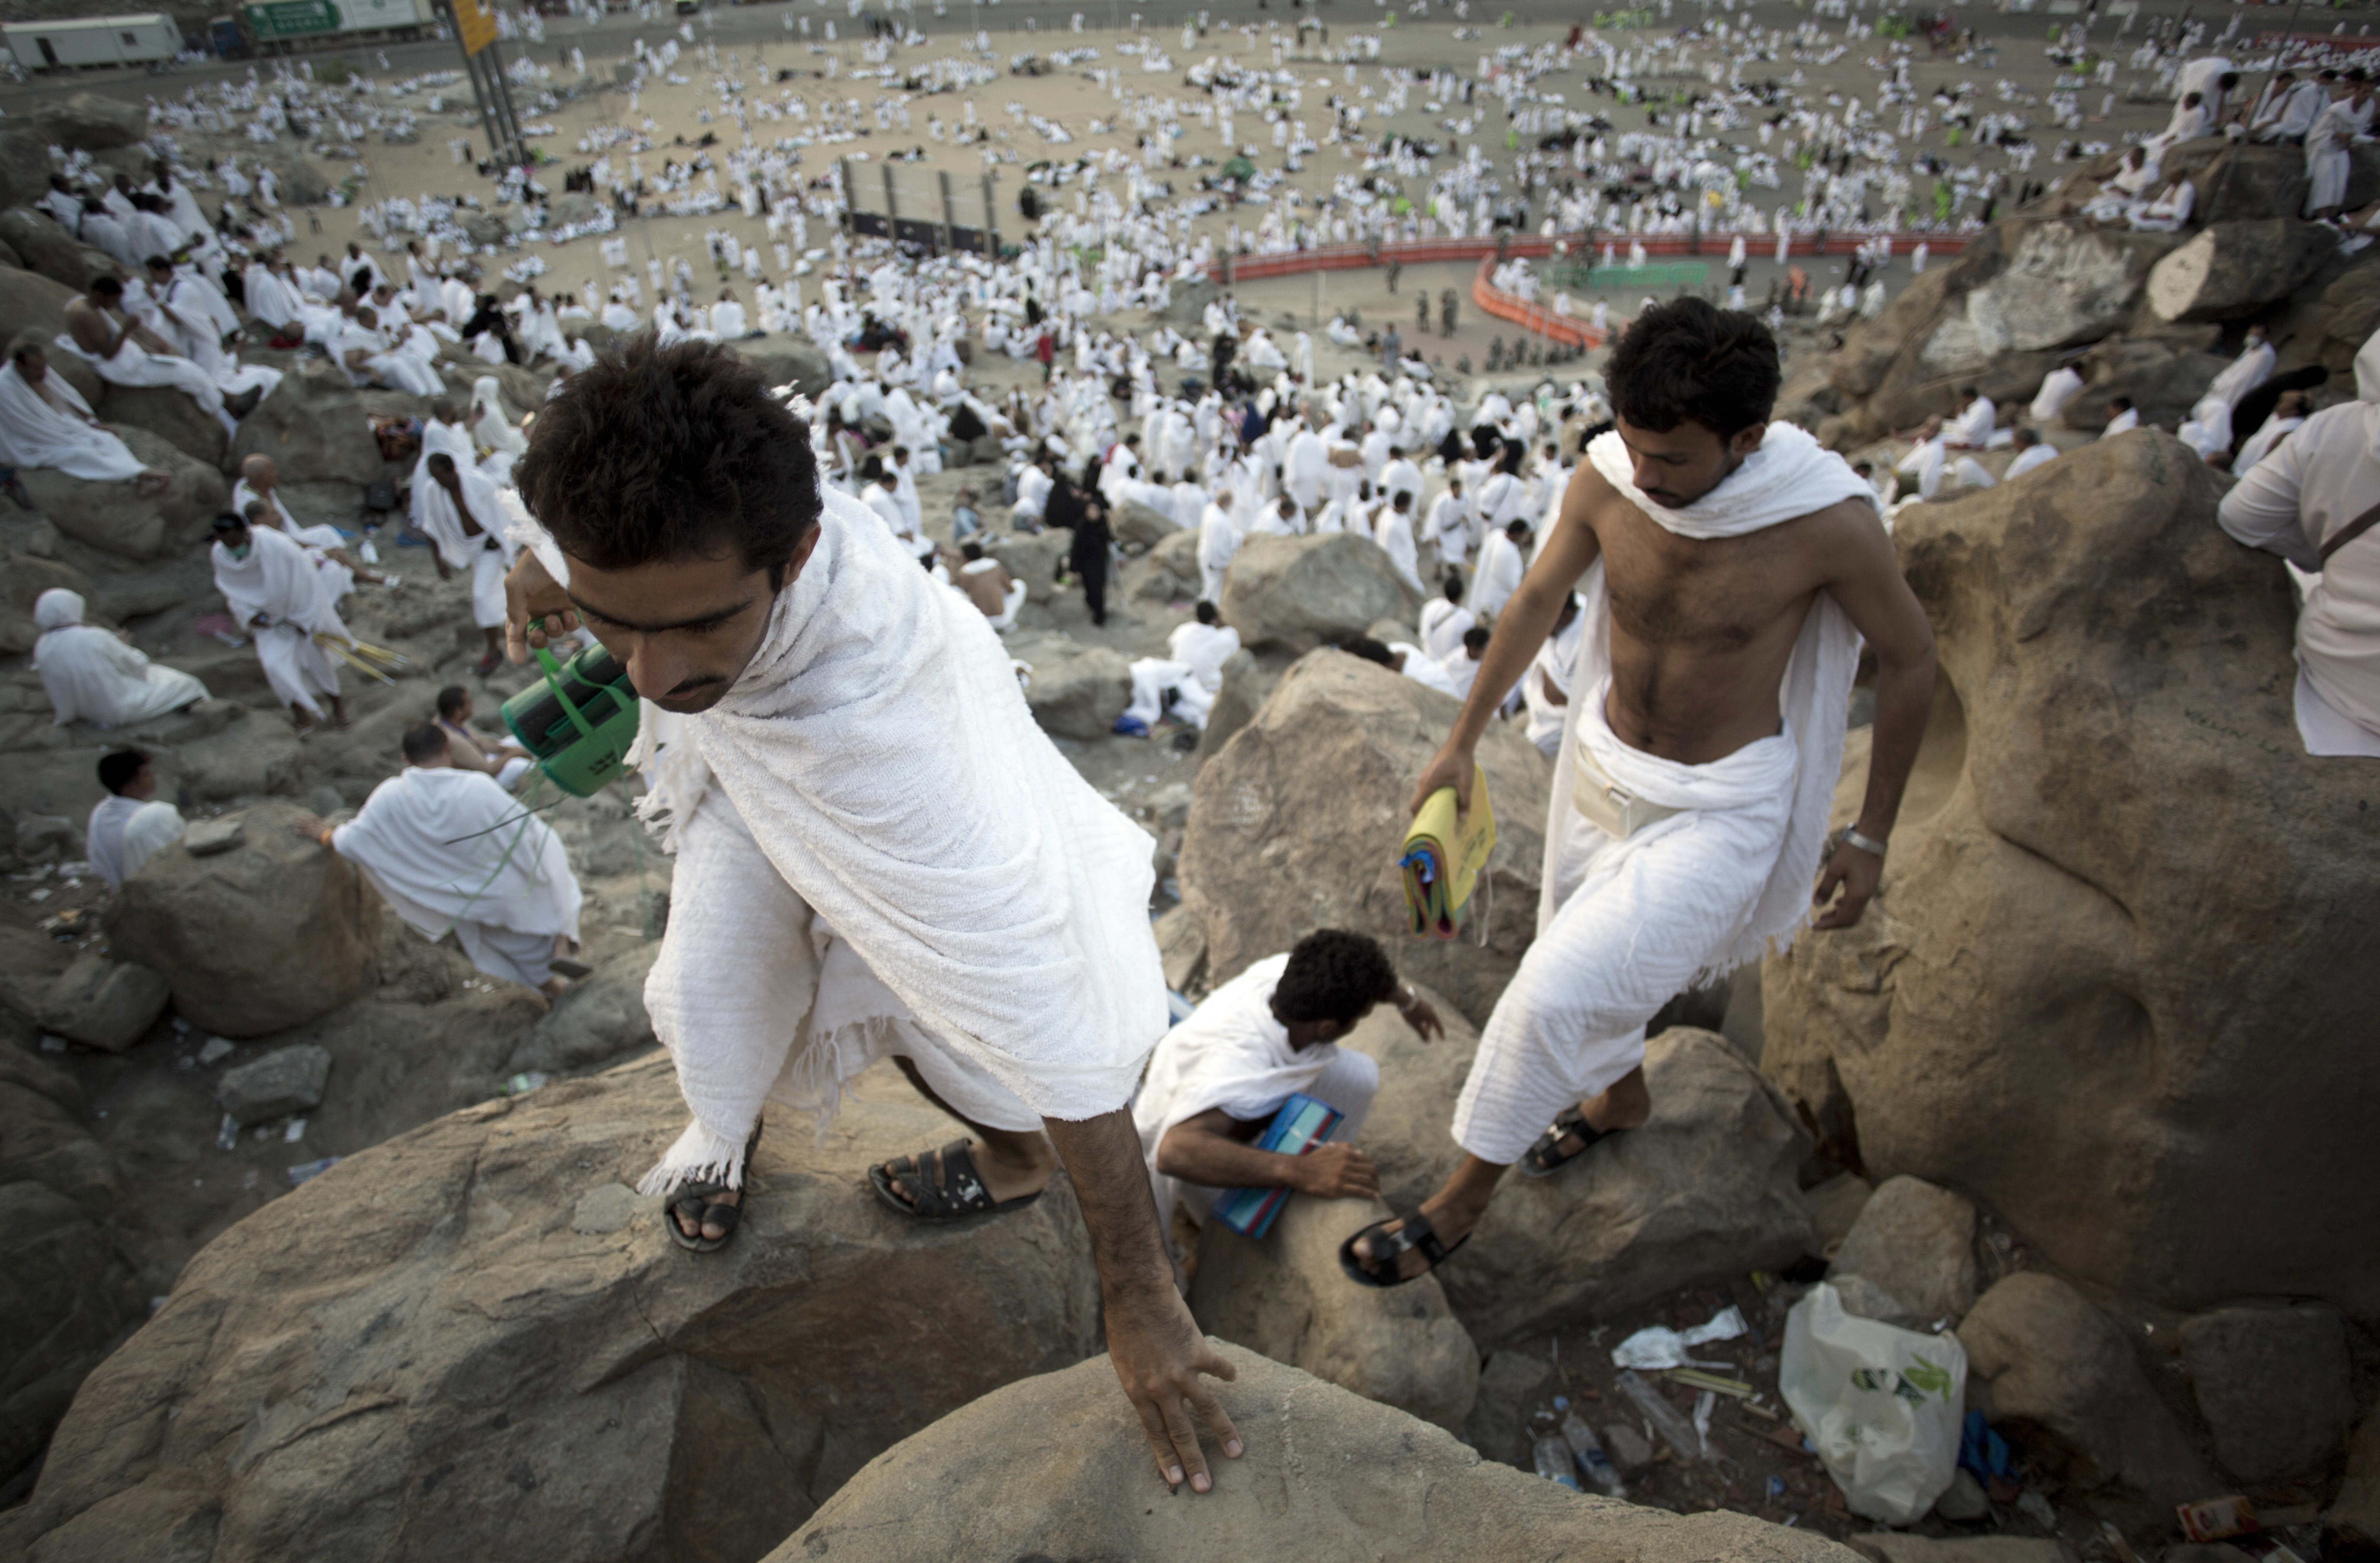 Muslim pilgrims climb Jabal Al Rahma holy mountain, or the mountain of forgiveness, at Arafat for the annual Hajj pilgrimage, outside the holy city of Mecca, Saudi Arabia, Aug. 31, 2017.